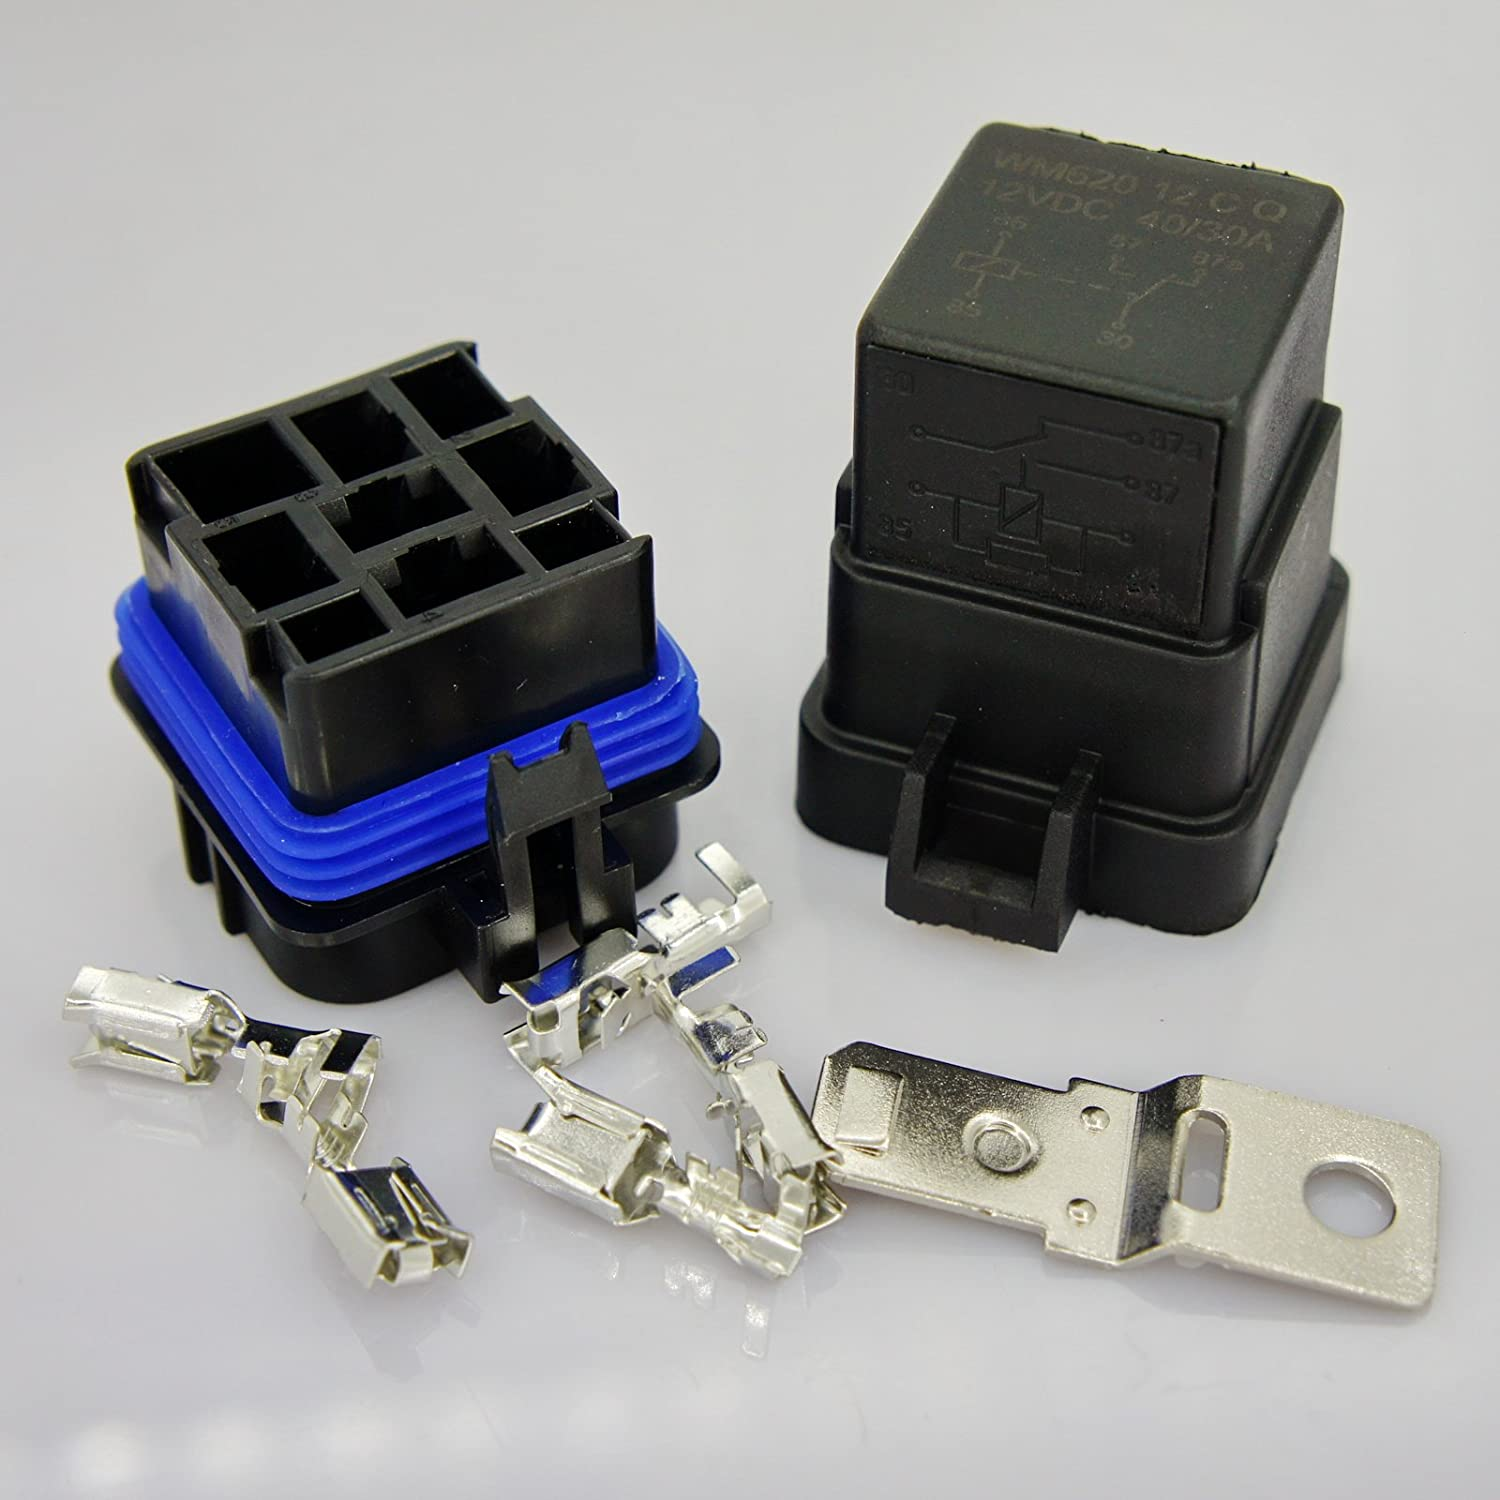 DC 12V 40A Universal Car Vehicle Waterproof Sealed Integrated Relay Kit & Base (5-Pin Relay) WLS AA098